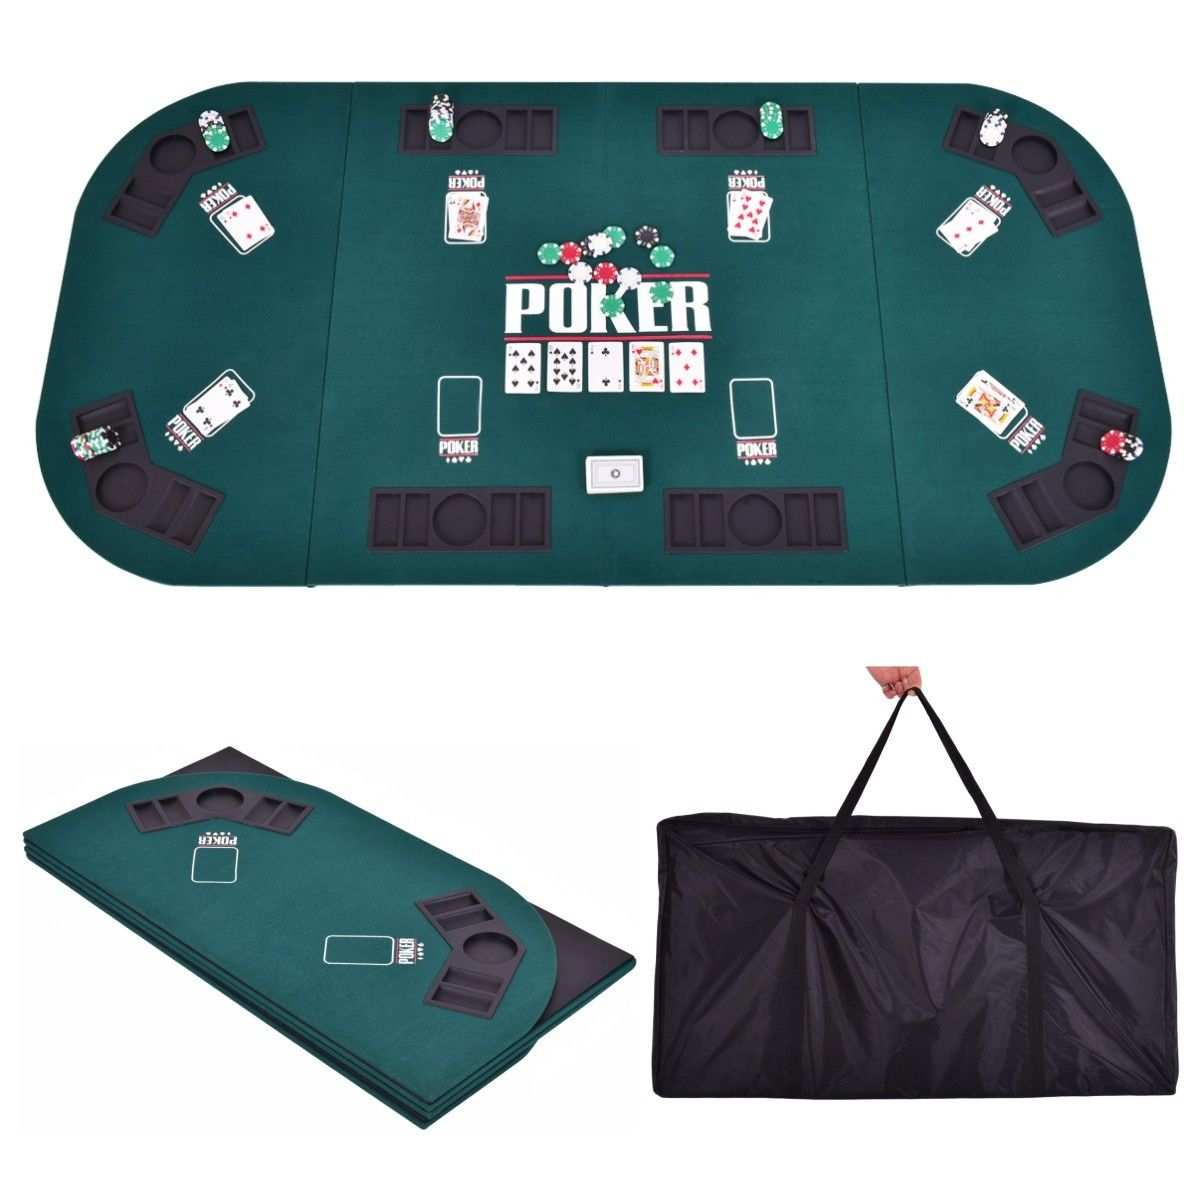 Costway Folding Four Fold 8 Player Poker Table Top & Carrying Case Portable Green